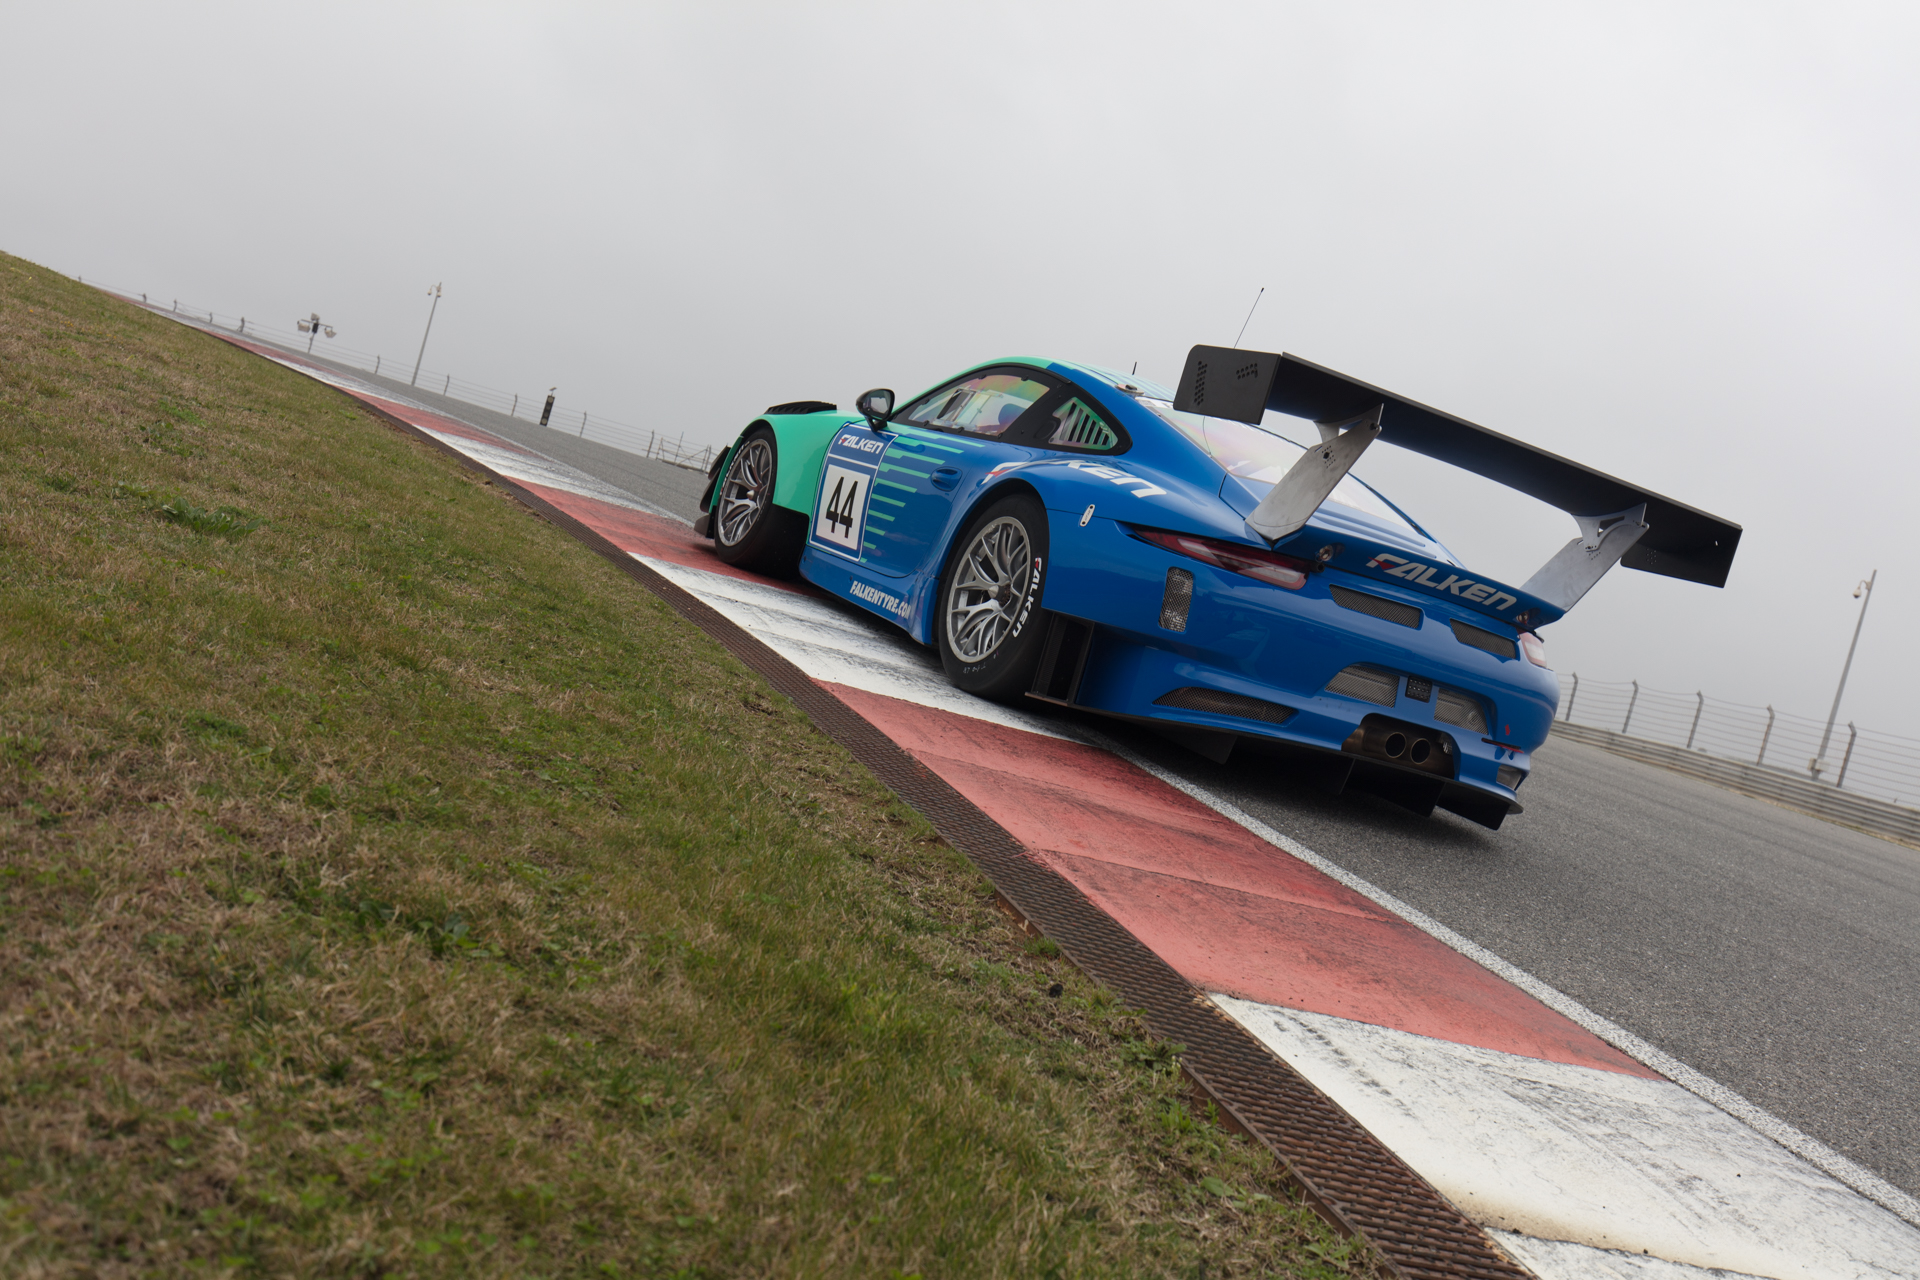 Before-Falken Porsche 991 GT3 R